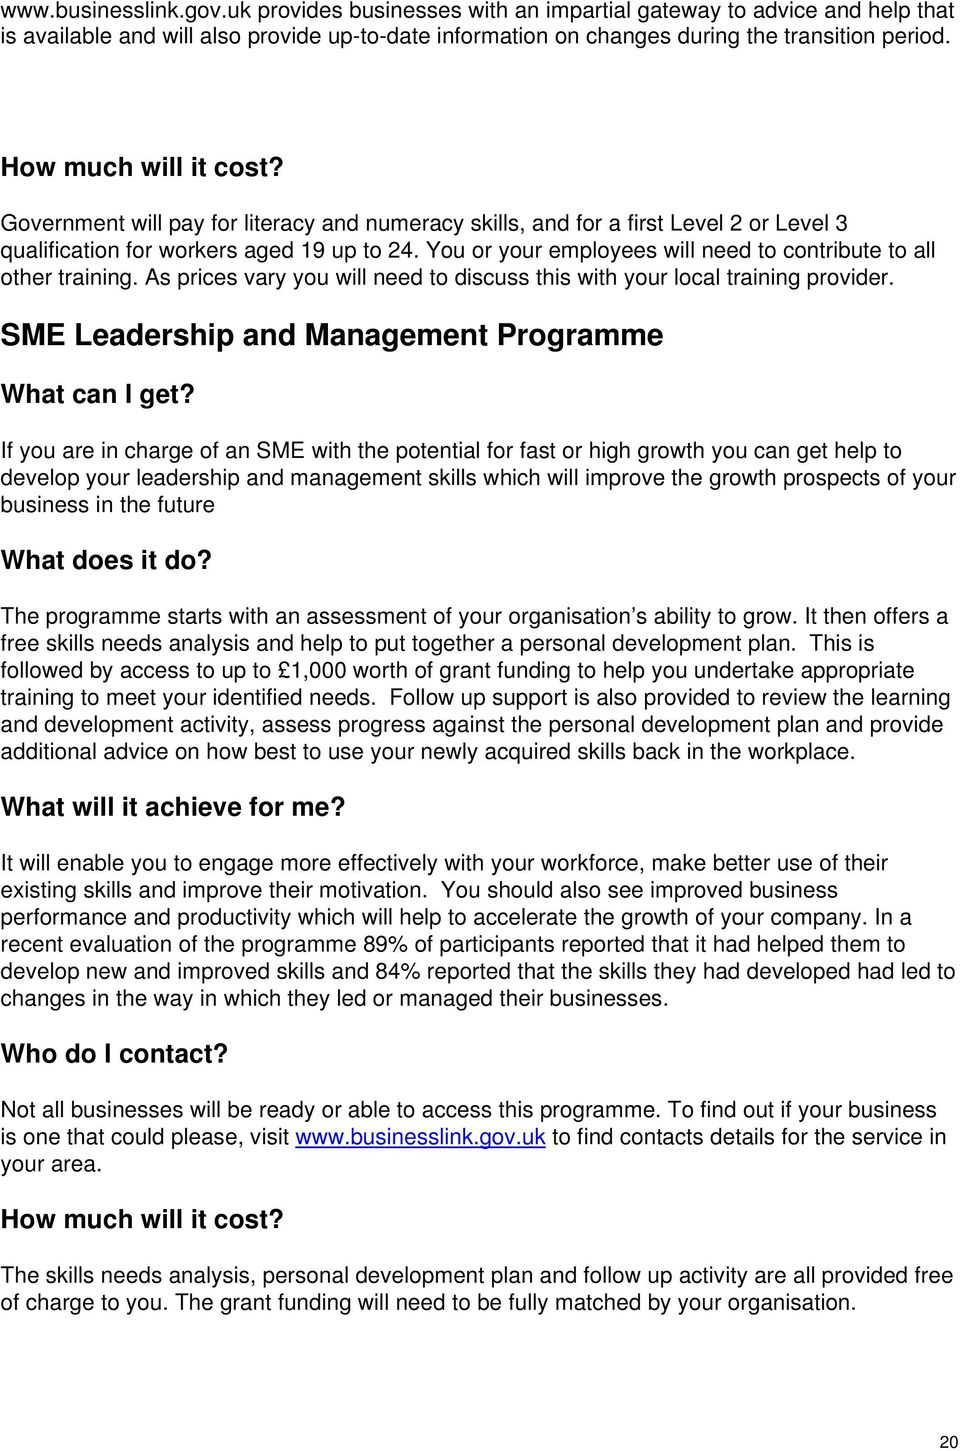 SME Leadership and Management Programme If you are in charge of an SME with the potential for fast or high growth you can get help to develop your leadership and management skills which will improve